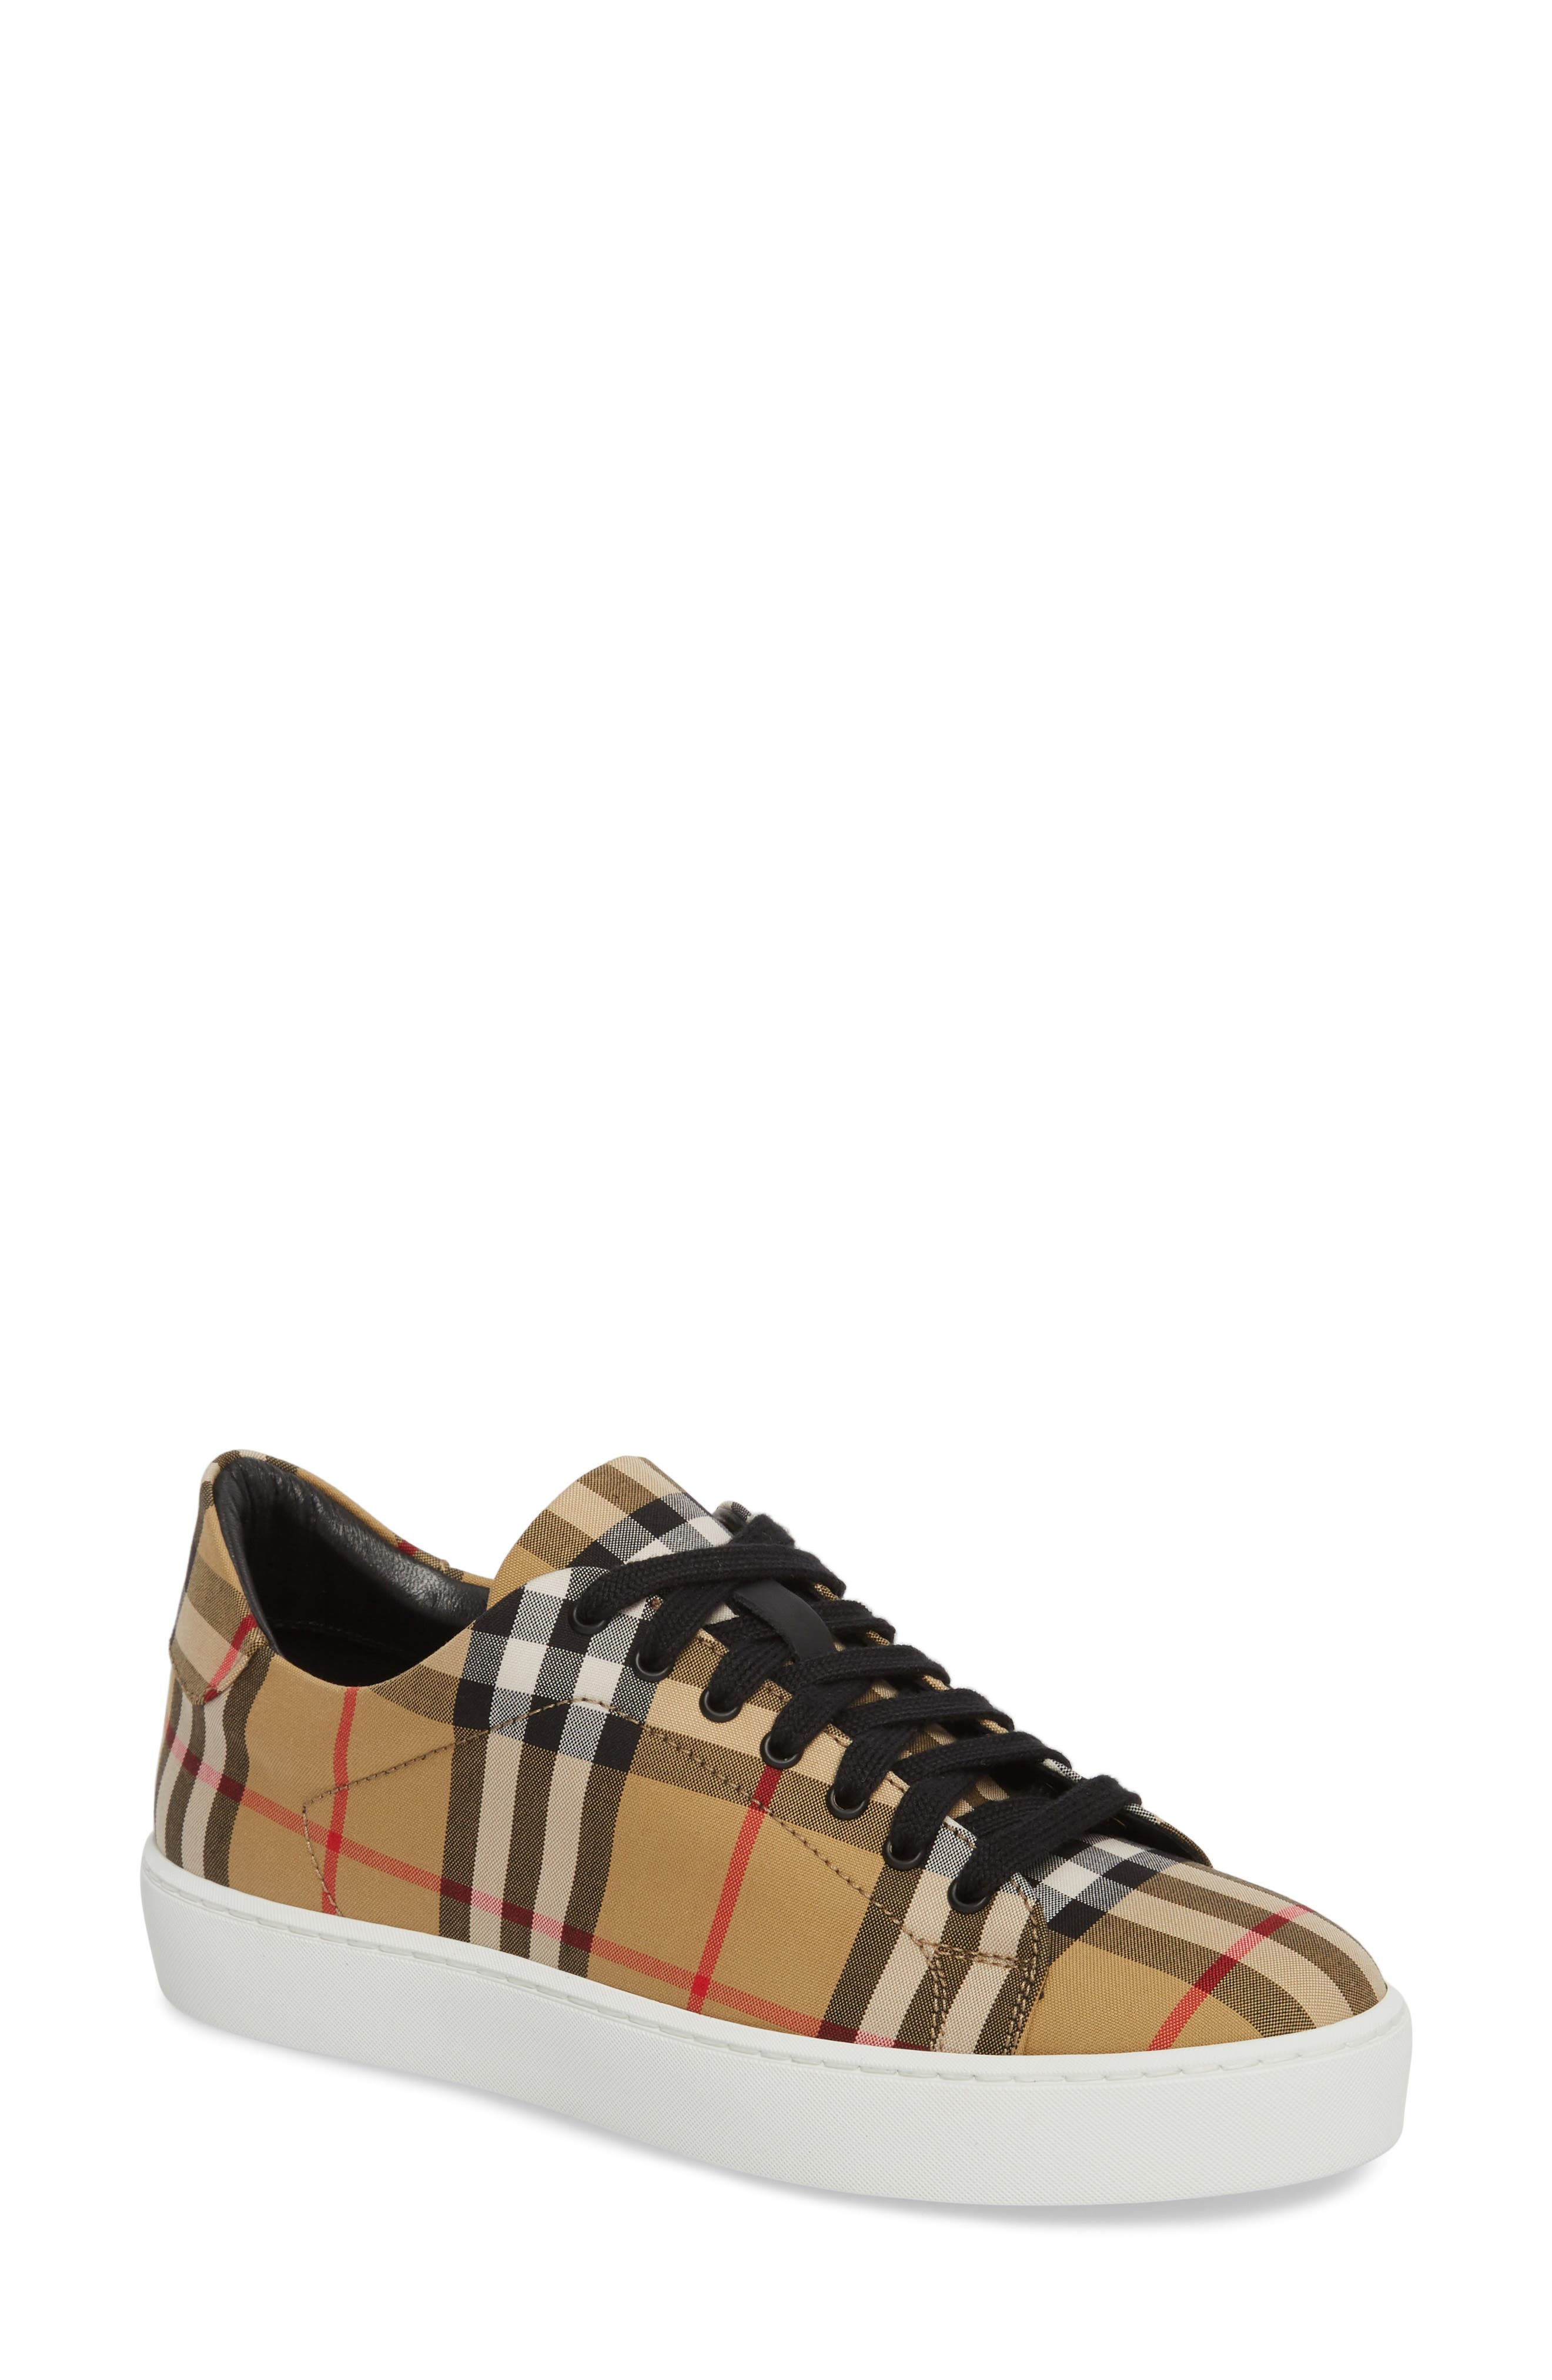 Westford Check Sneaker,                         Main,                         color, Antique Yellow